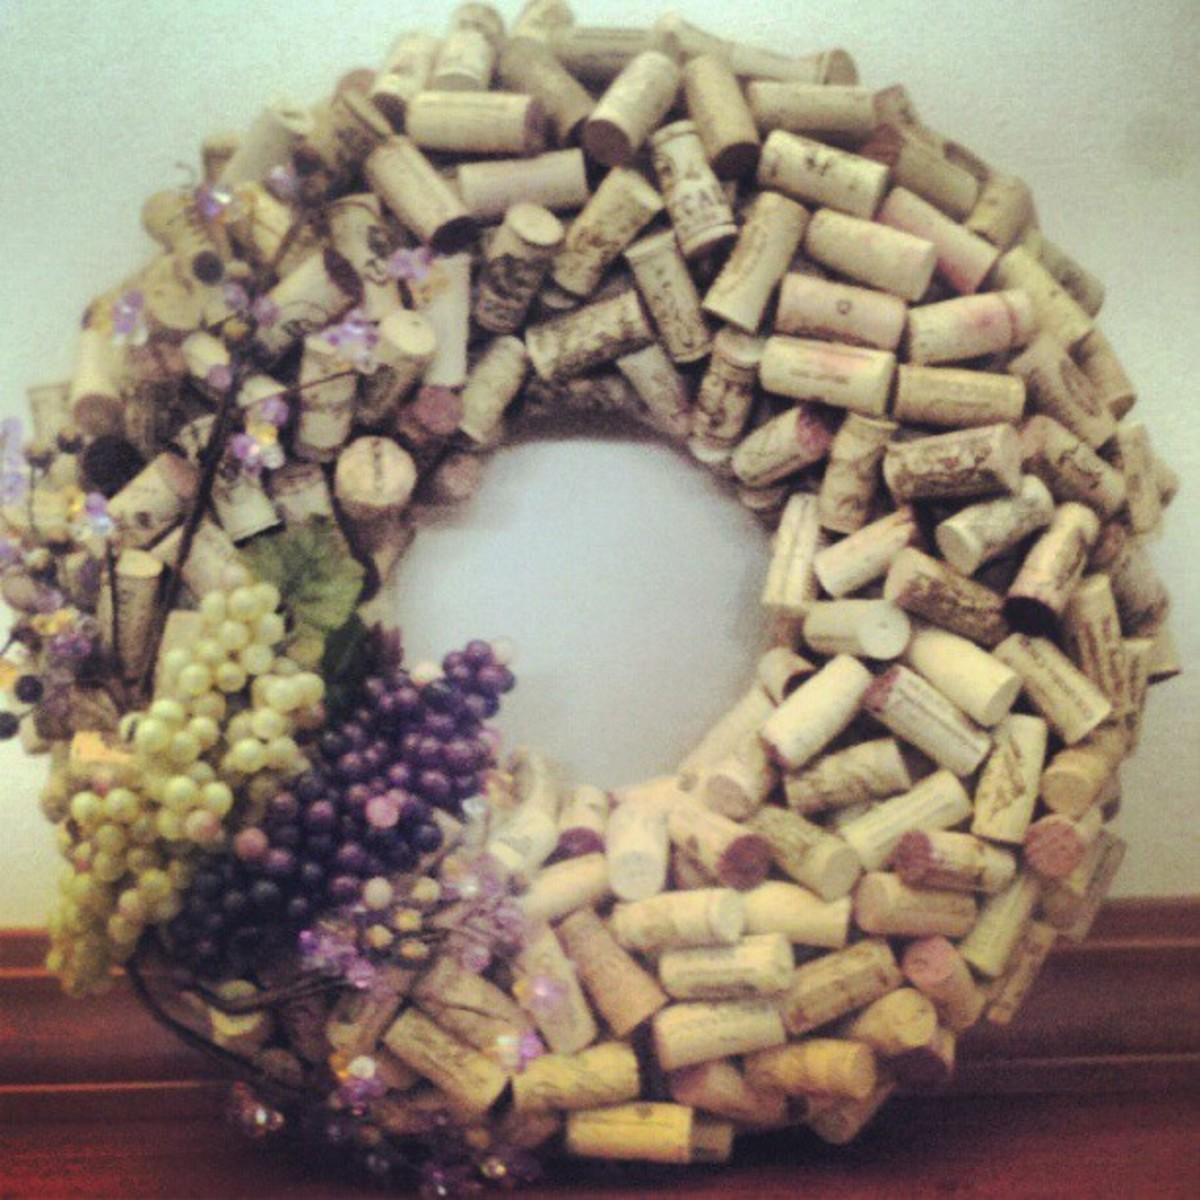 How to Make a Wreath With Wine Corks